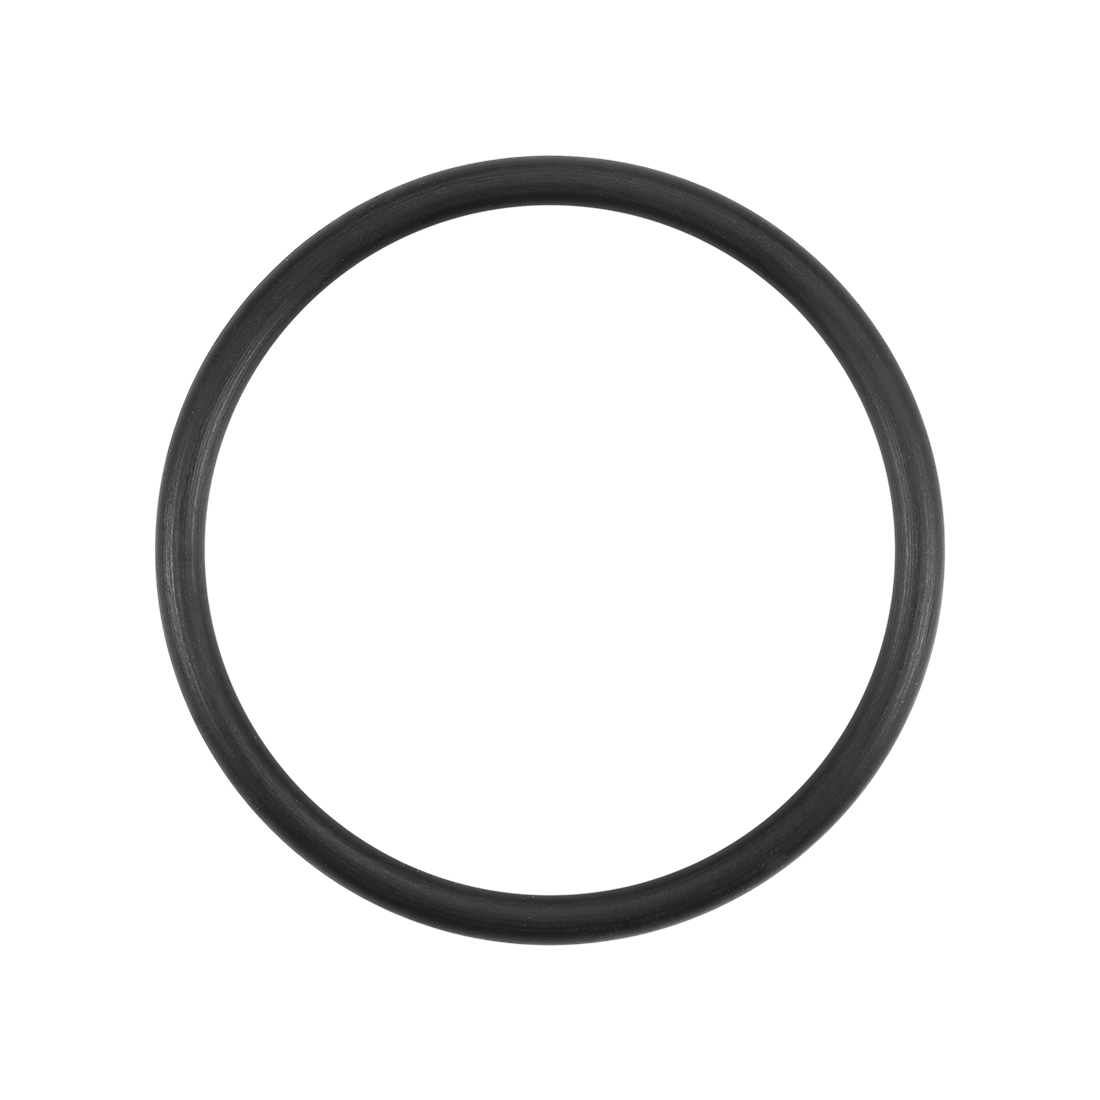 O-Rings Nitrile Rubber 21mm x 24.6mm x 1.8mm Round Seal Gasket 20Pcs